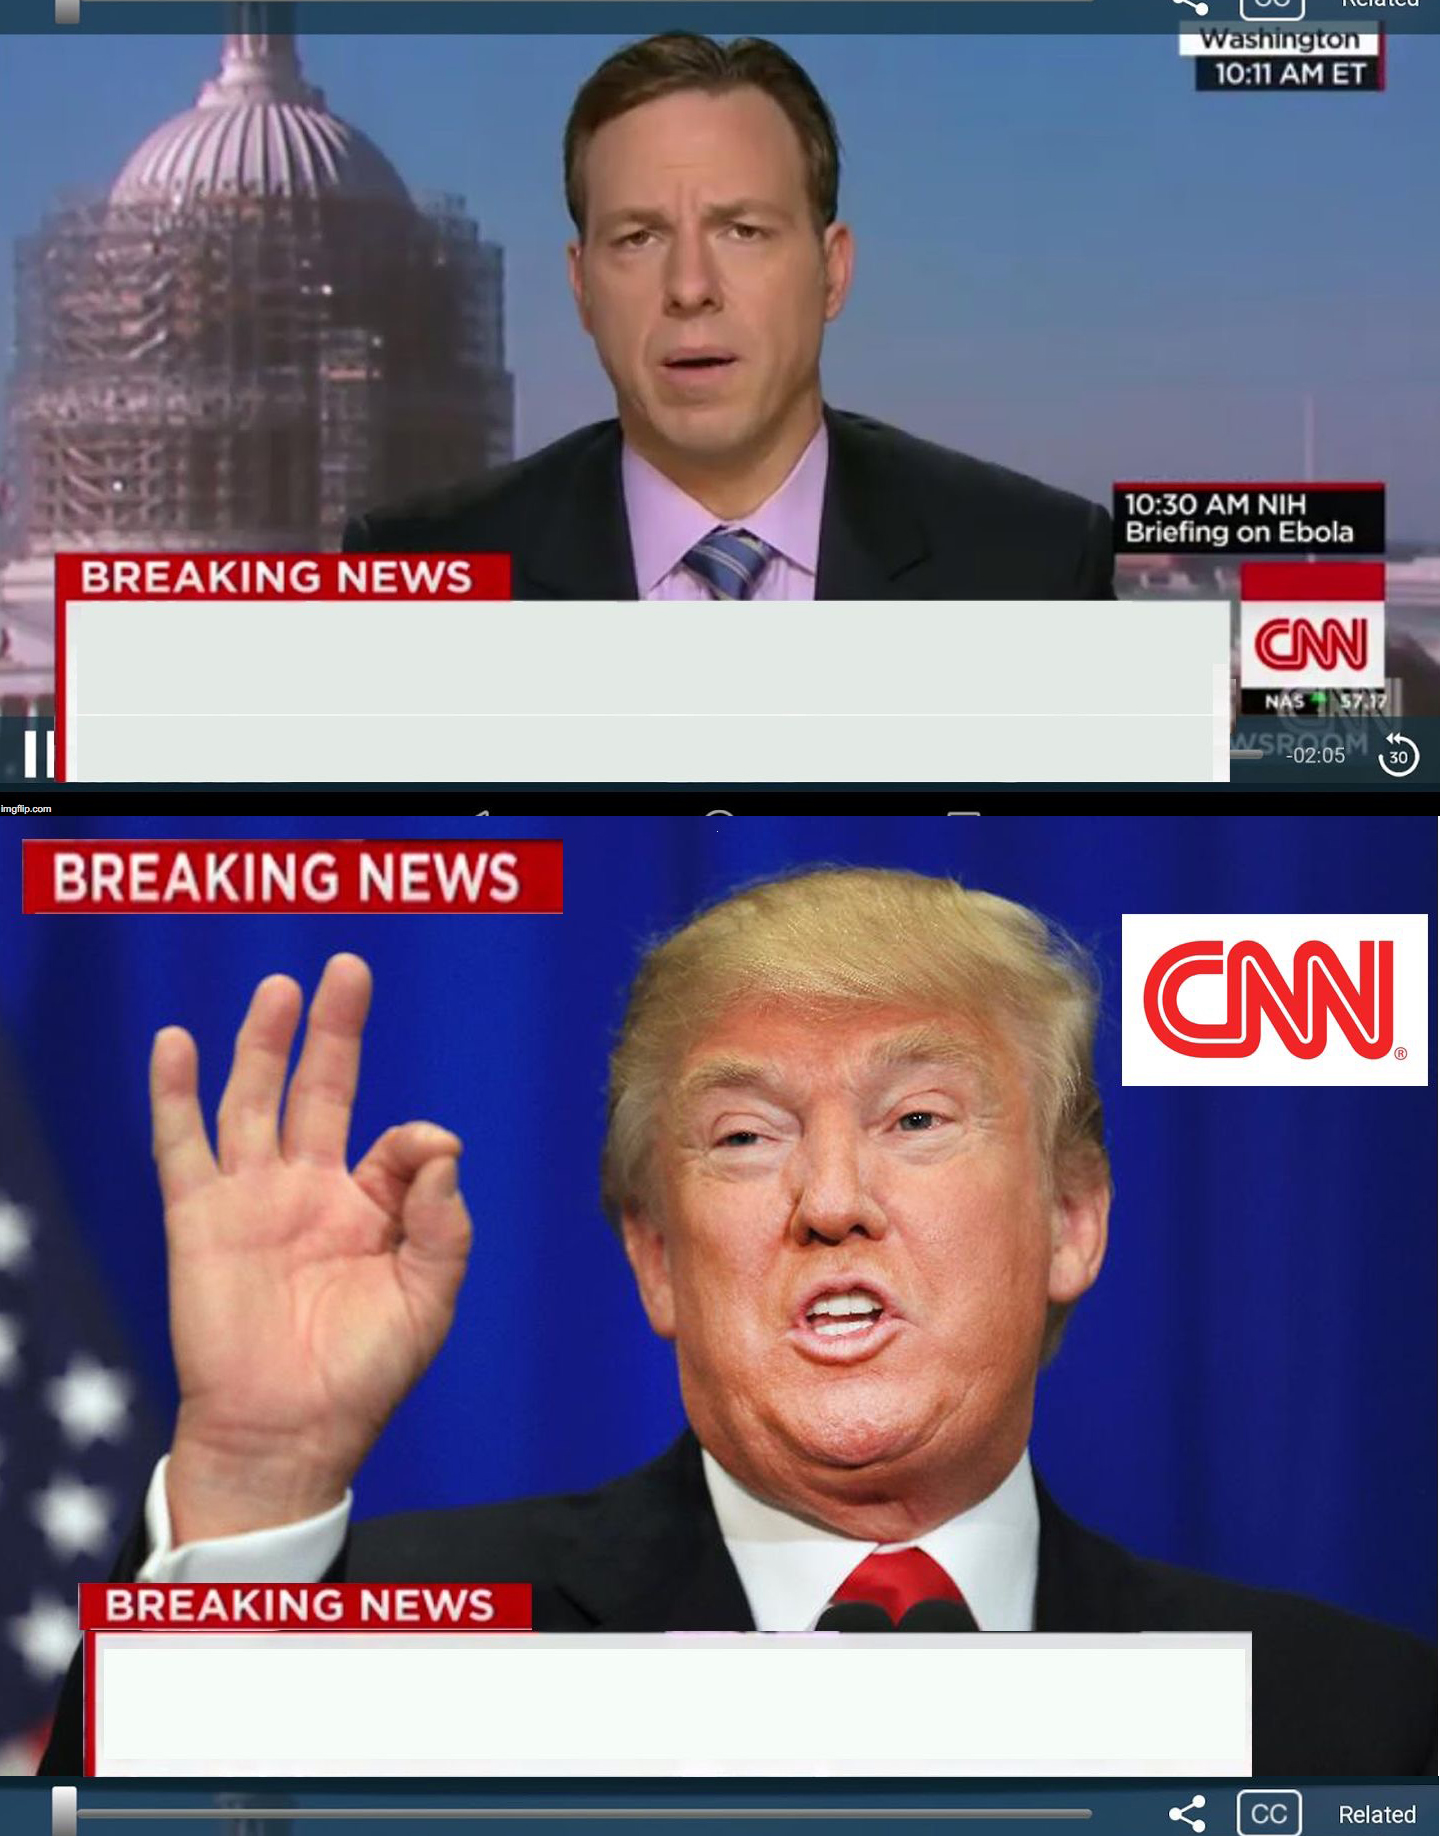 High Quality CNN phony Trump news Blank Meme Template